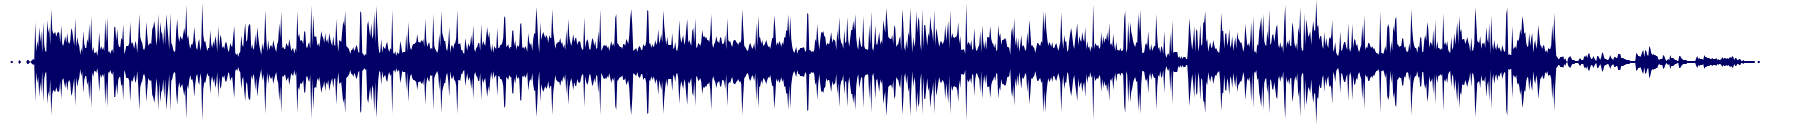 waveform of track #83737